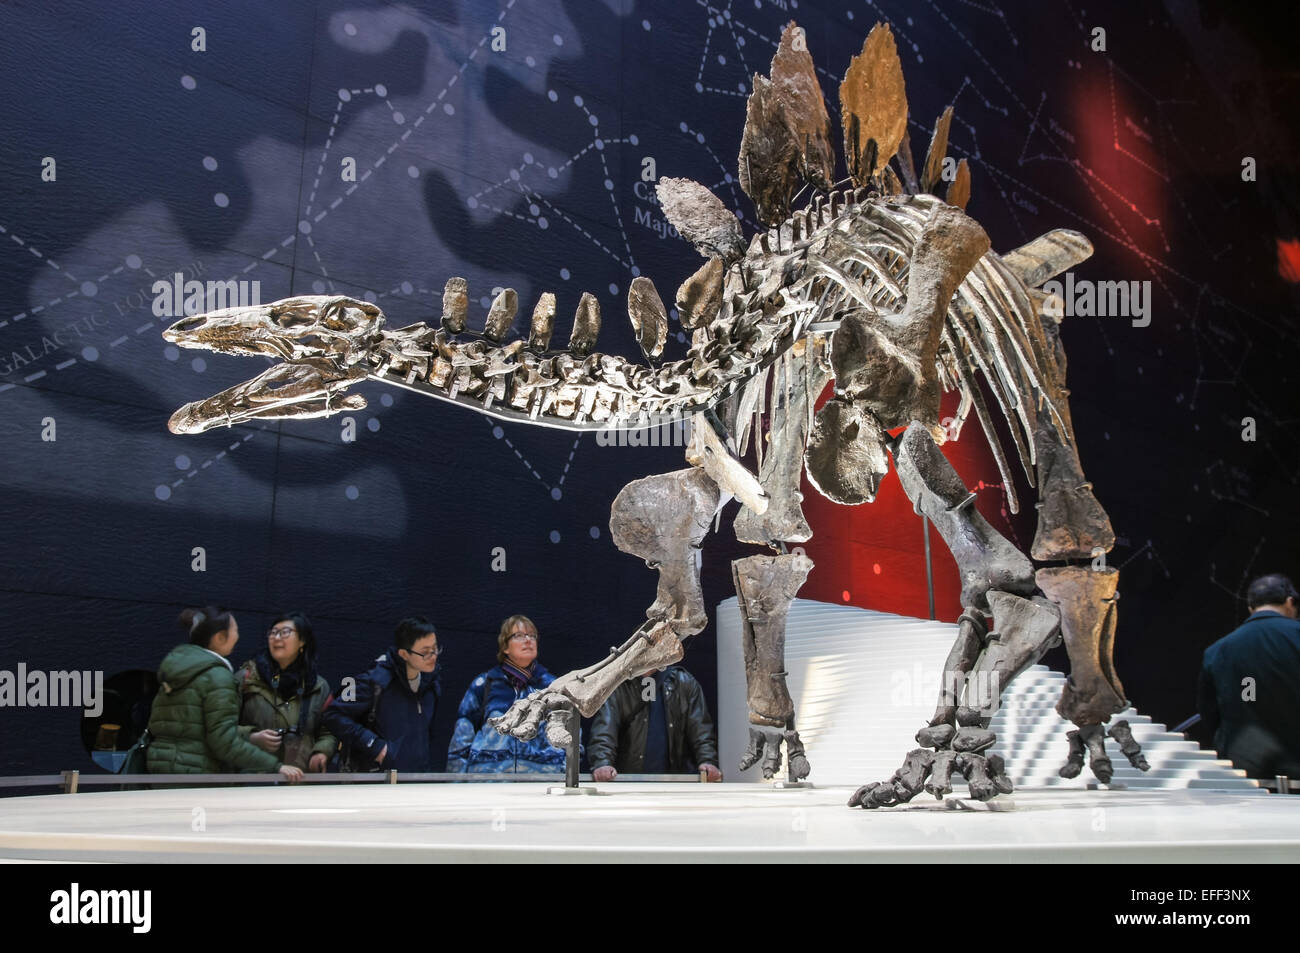 Complete stegosaurus skeleton (named Sophie) displayed at the Earth Hall in the Natural History Museum in London - Stock Image